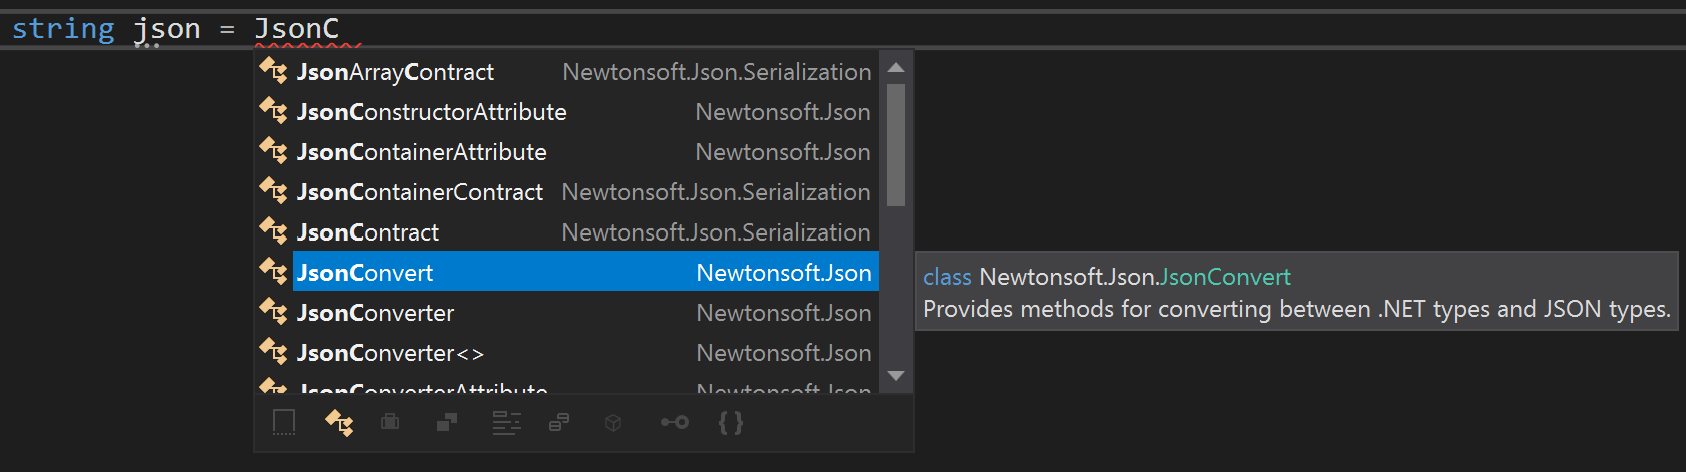 Visual Studio 2019 version 16.1 Preview 3 now available img5.png